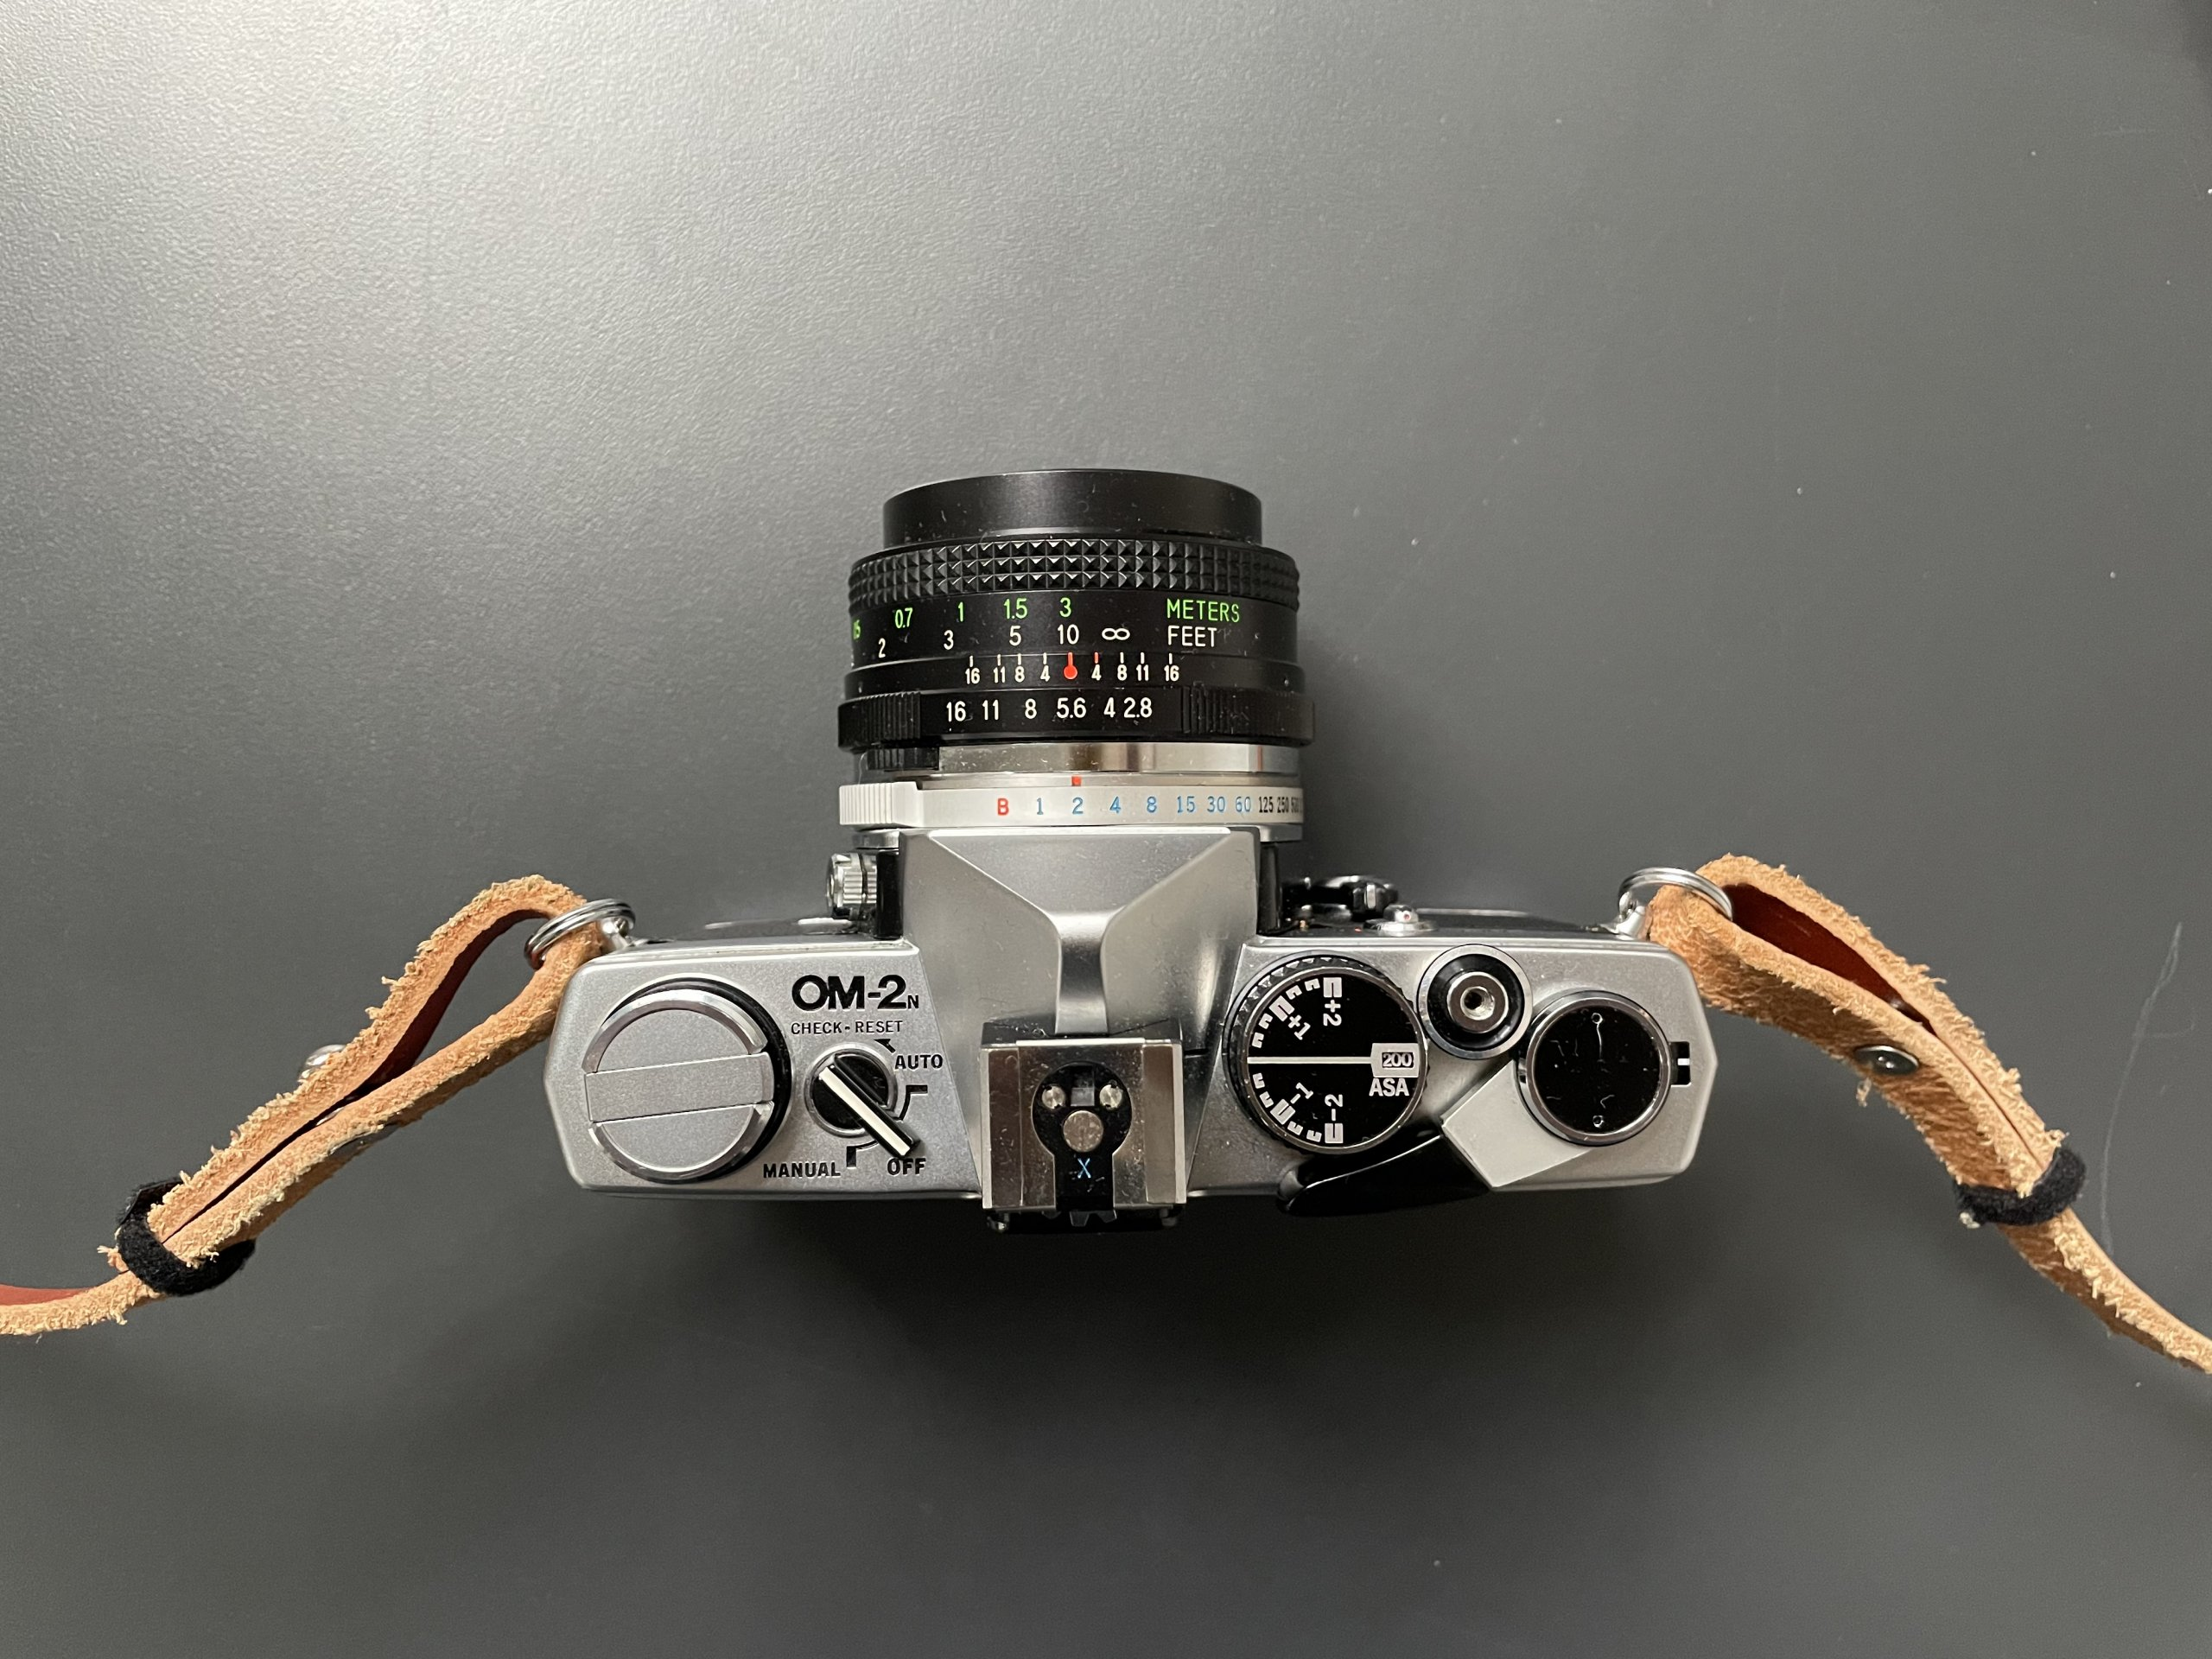 Olympus OM-2n camera, from the top, on a gray steel table.